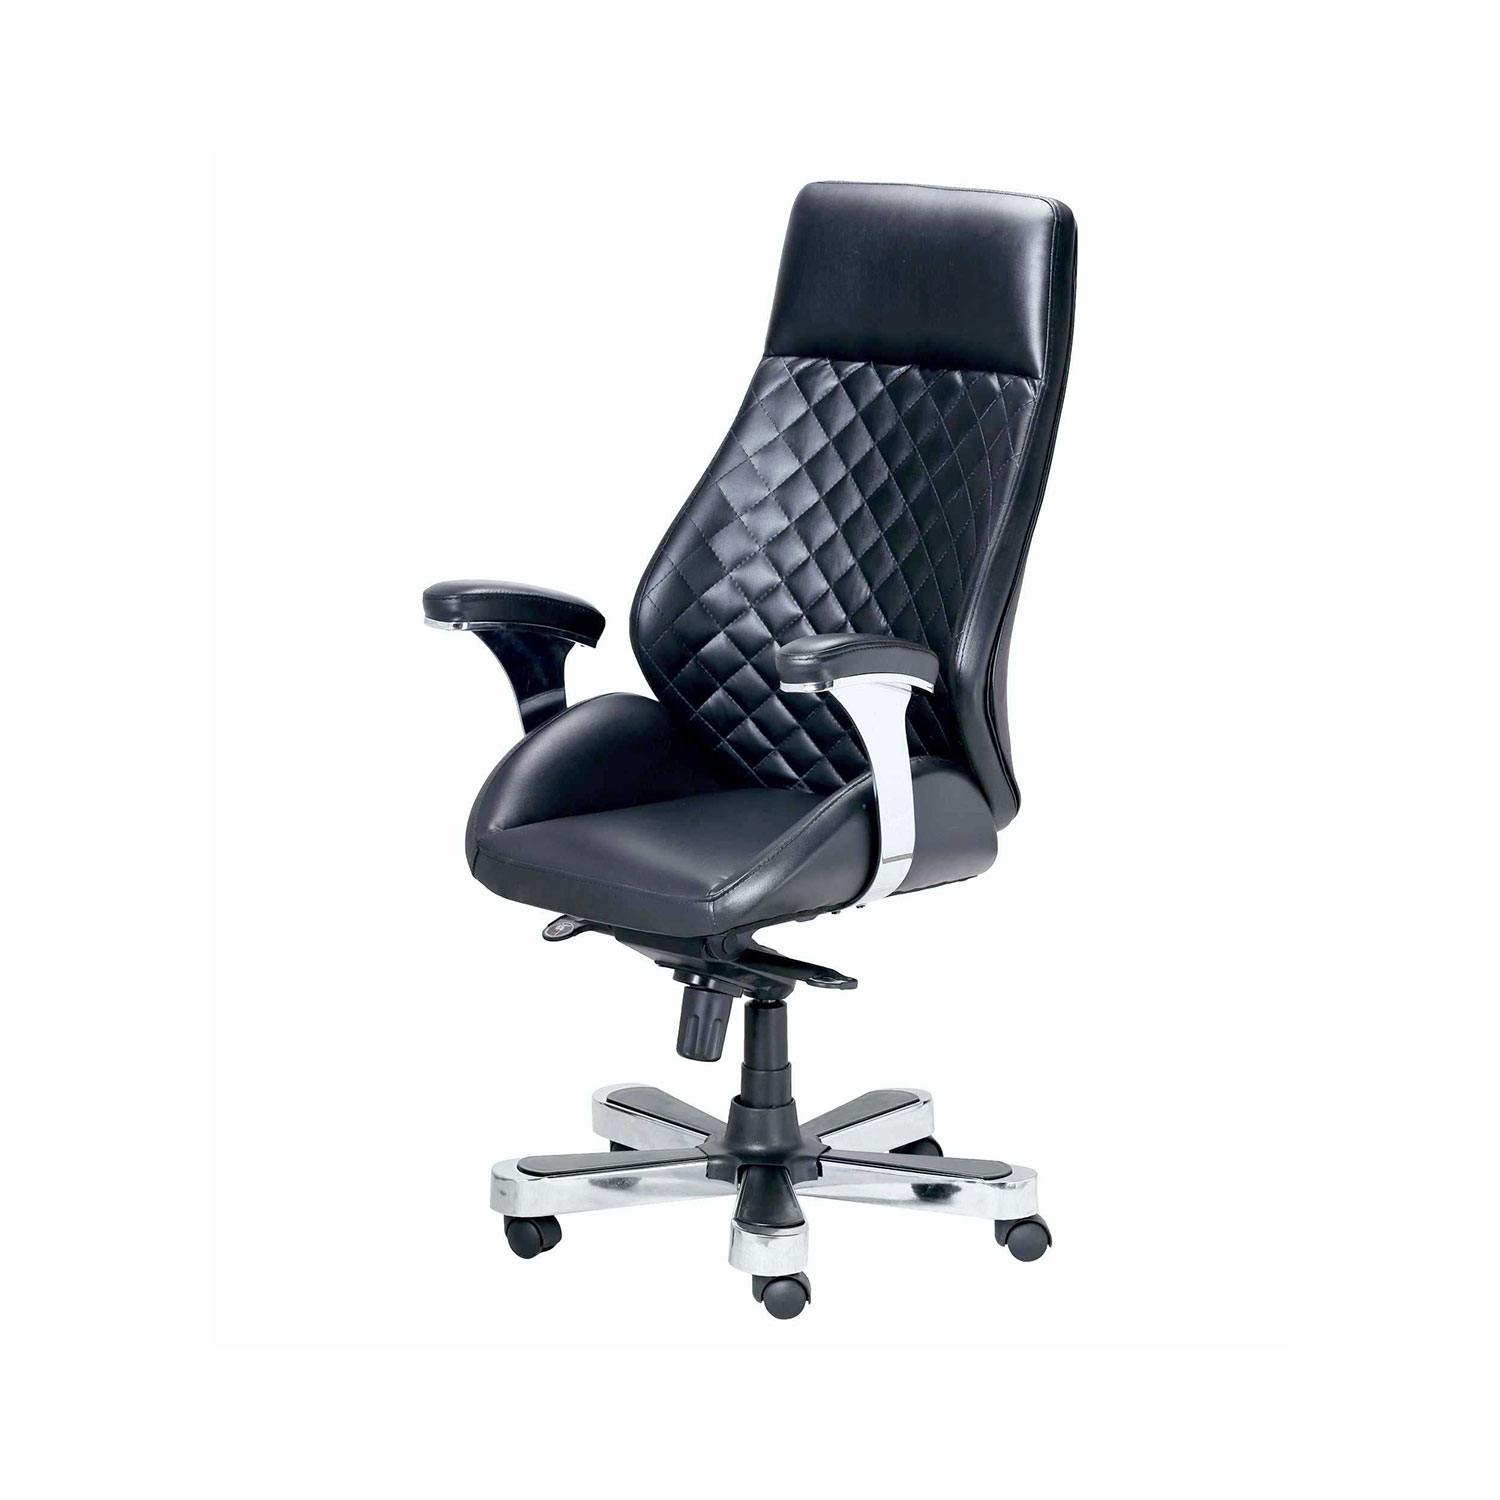 The Galleta Executive Hb Chair In Black Color Vj Interior